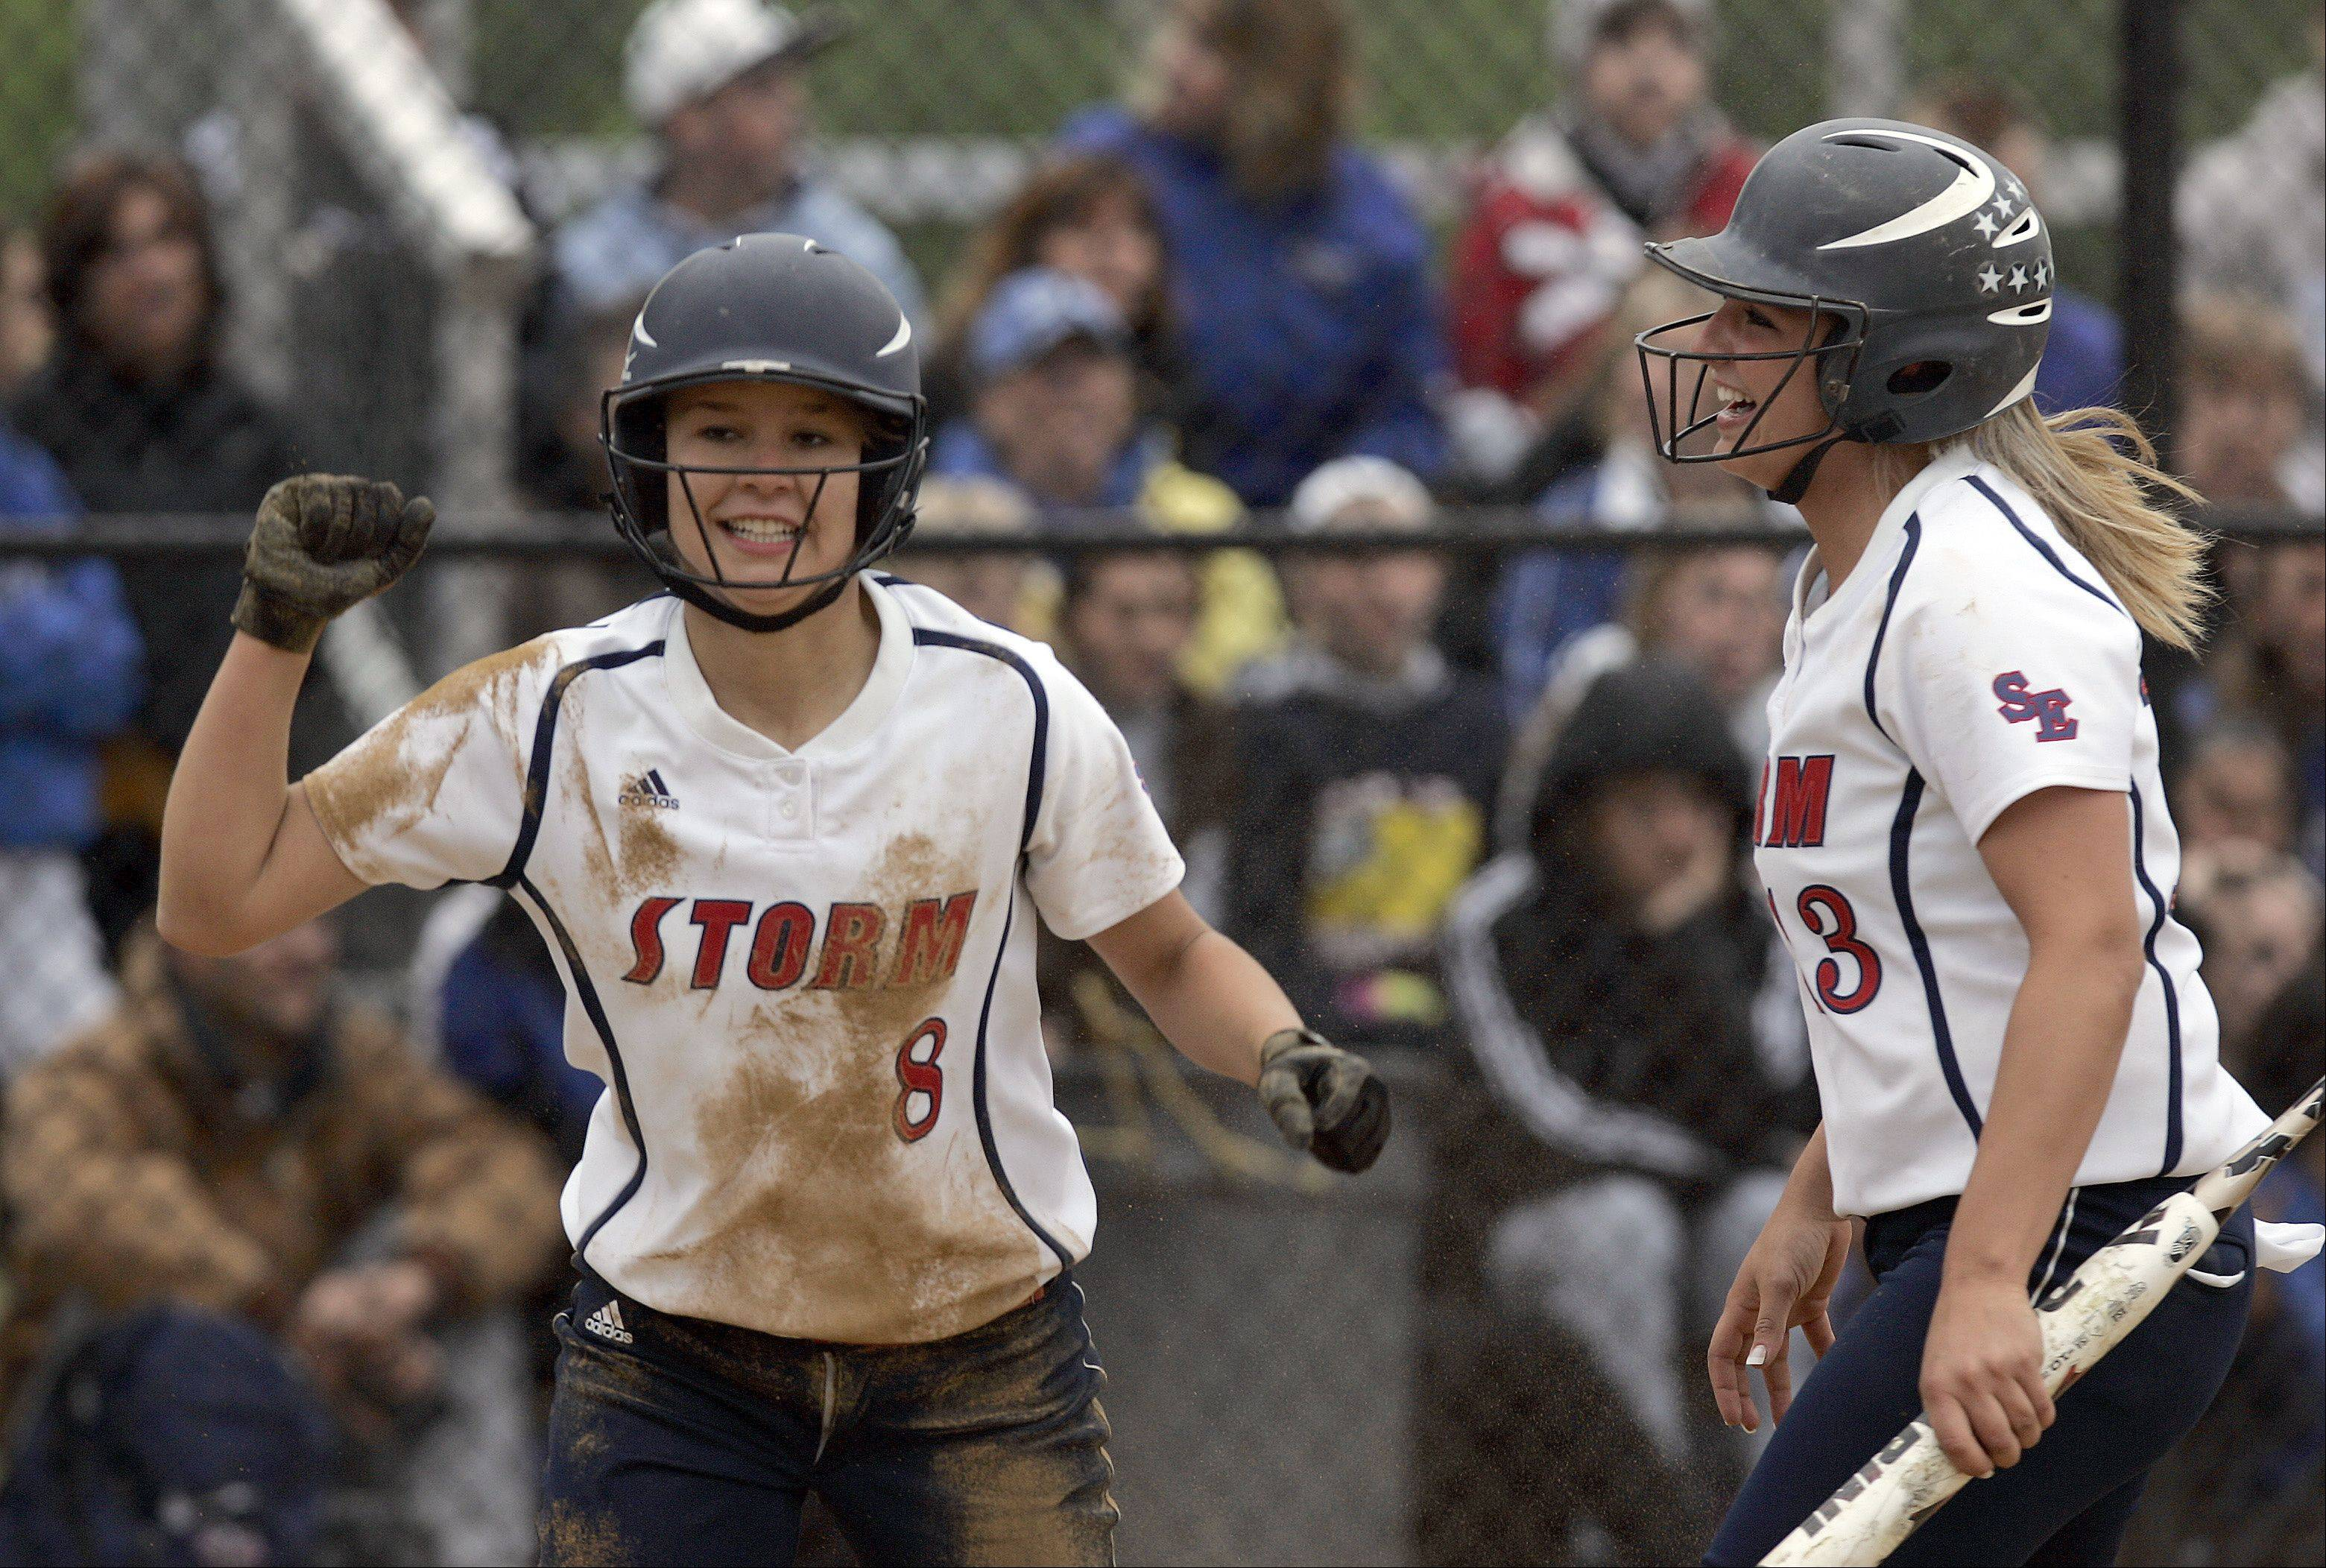 South Elgin's Victoria Watt (8) is greeted at the plate by Alyssa Buddle after scoring what turned out to be the game-winning run in a 2-1 win over St. Charles North in the Class 4A regional softball final at St. Charles North Saturday.